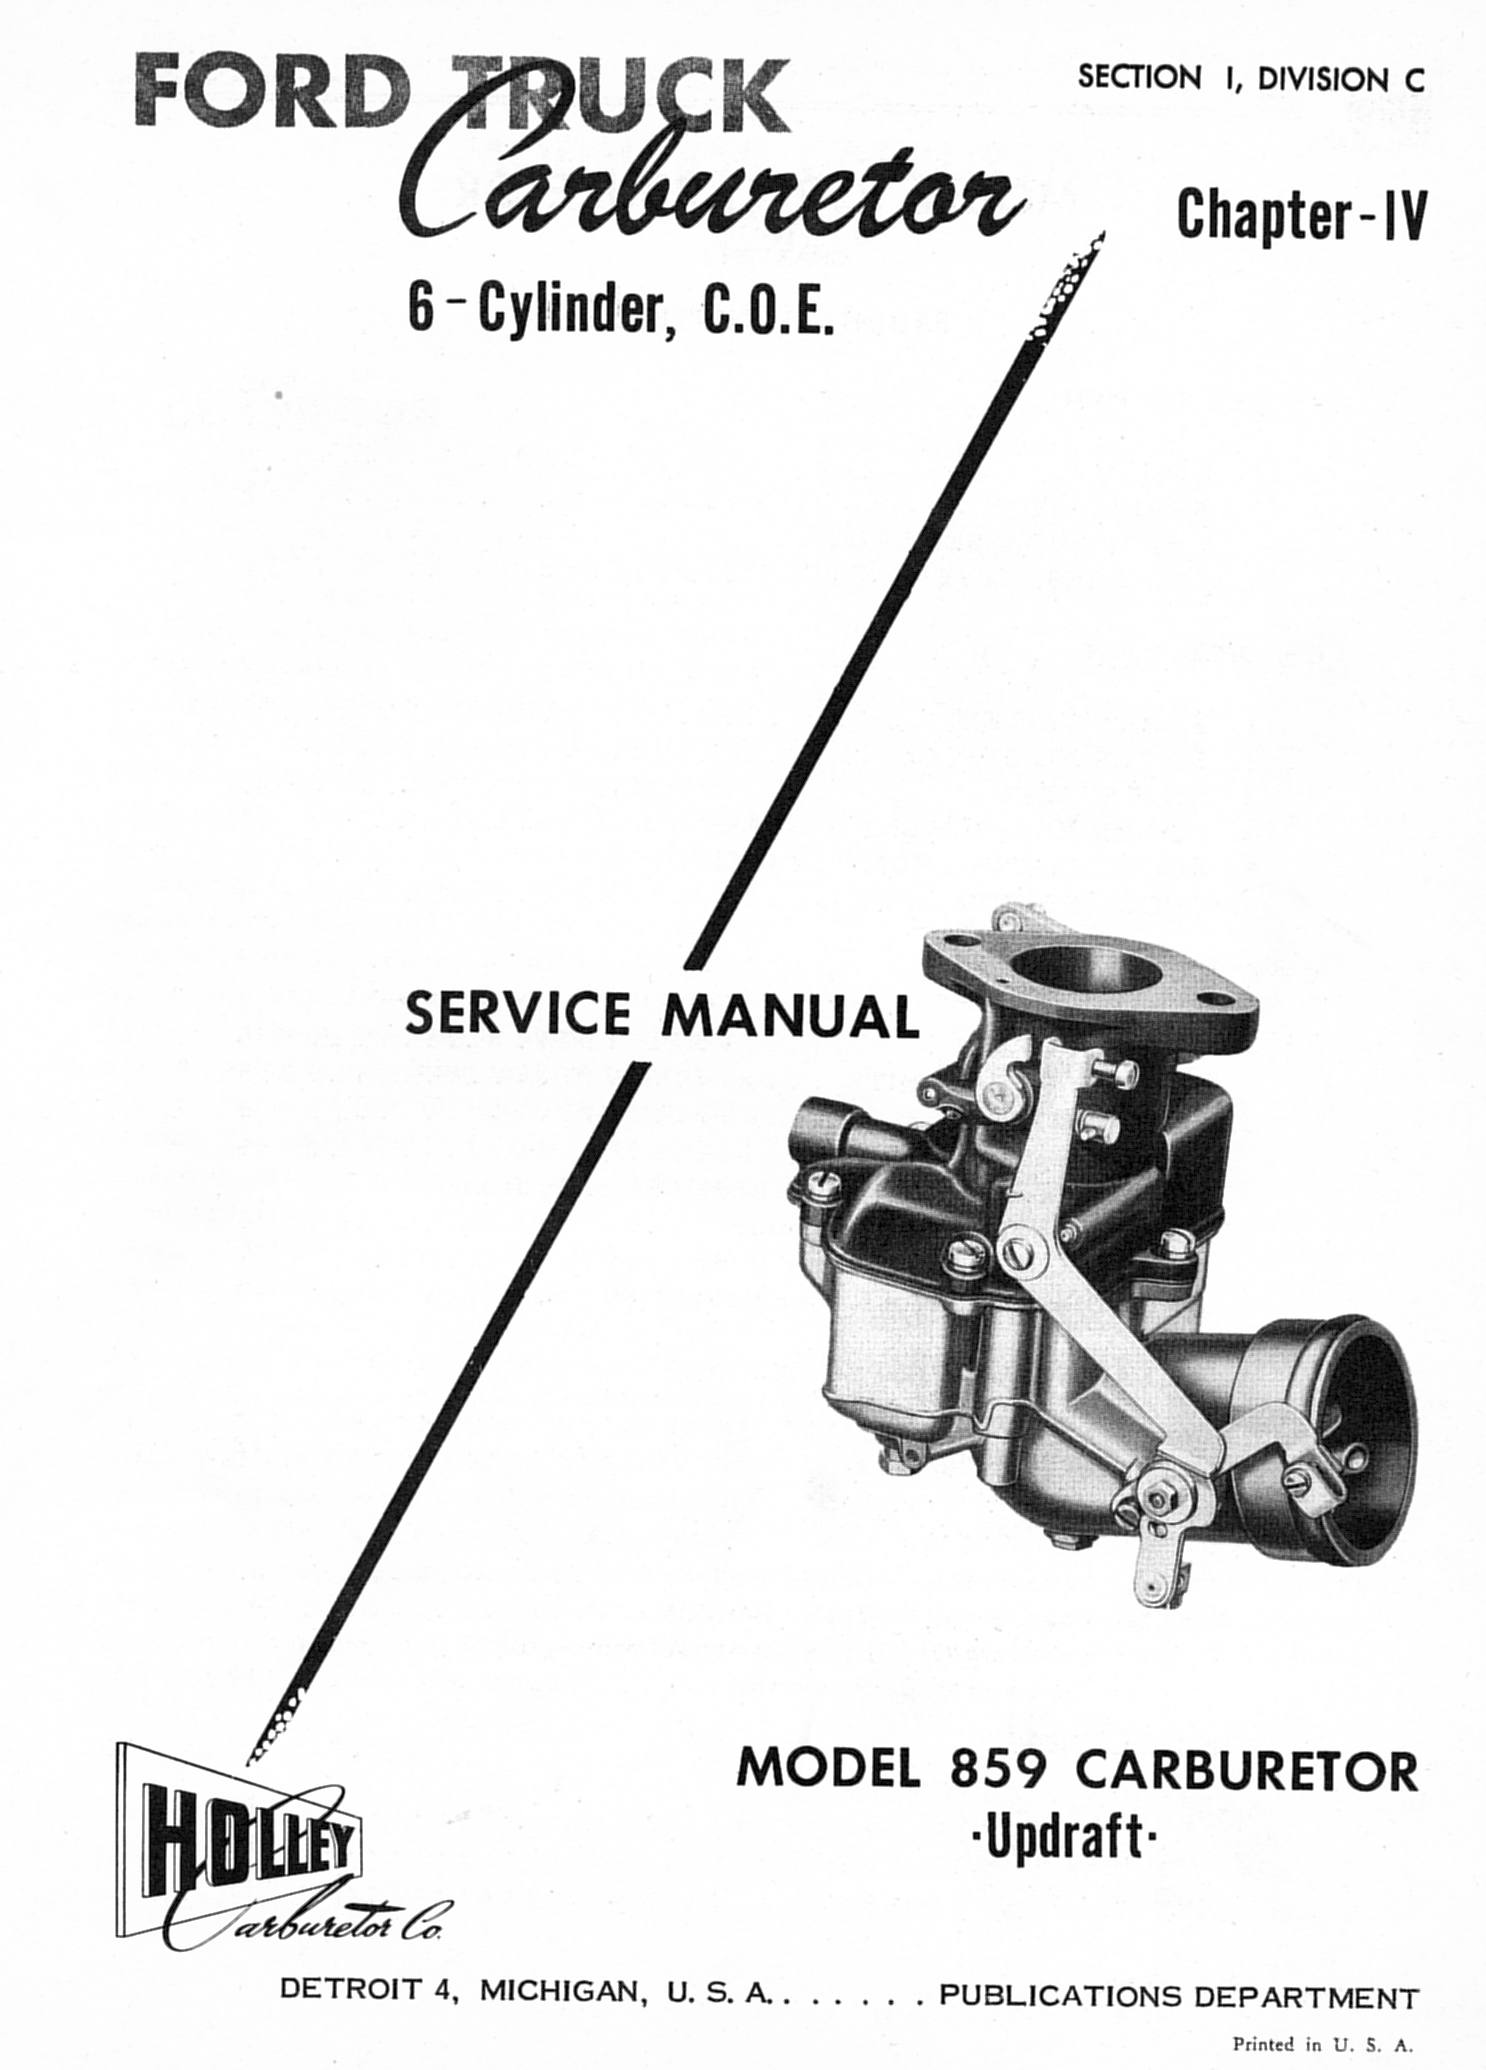 The Old Car Manual Project: Manuals and tech info online